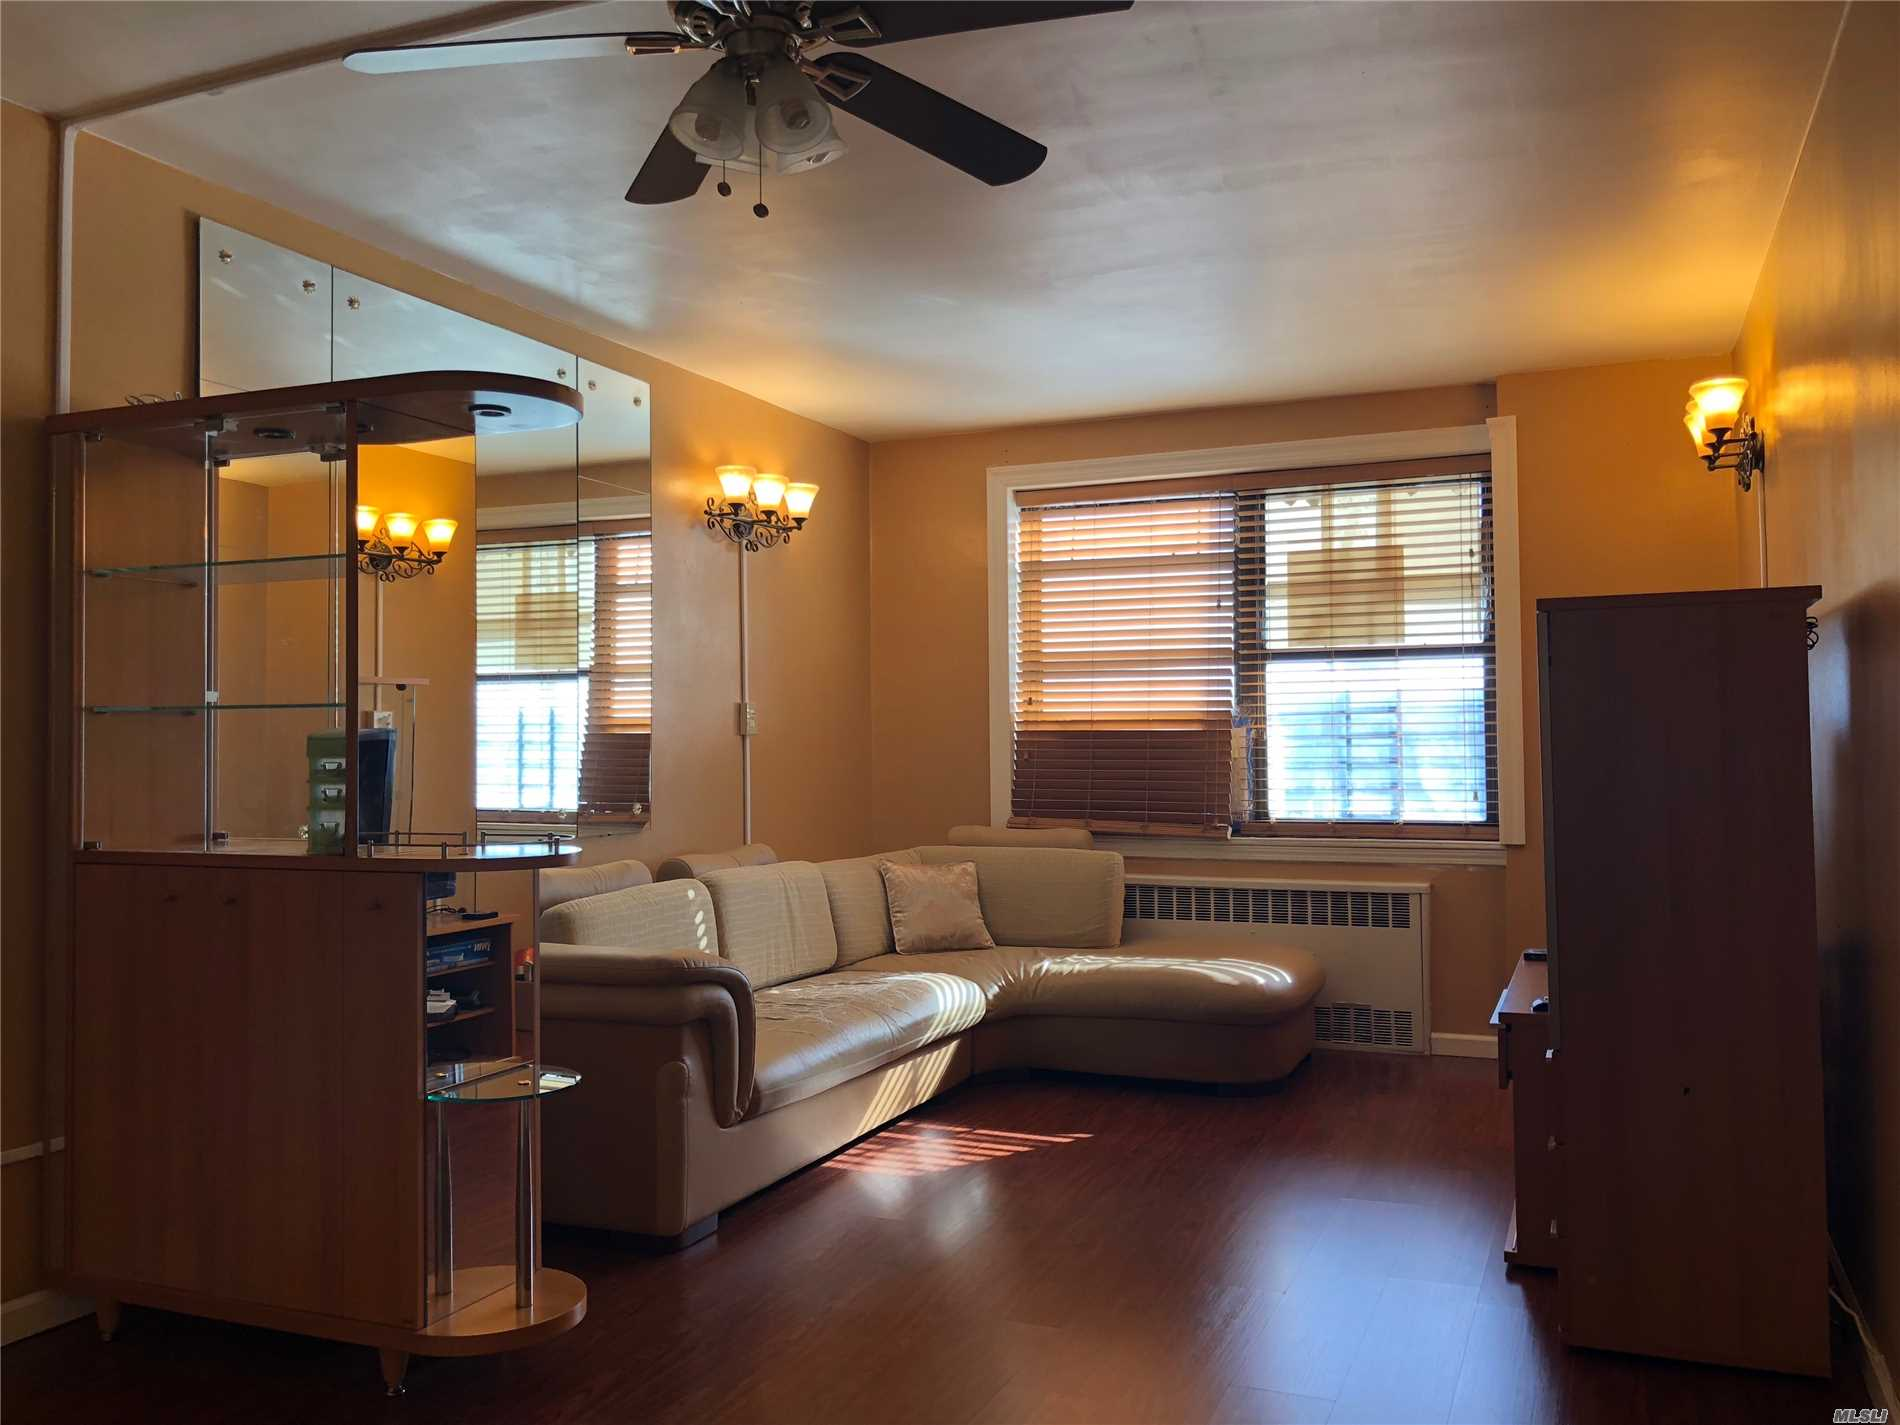 Updated Kitchen And Bath; Fresh Paint; Wood Floors; Bright And Airy Unit, Lots Of Closet Space, Closed To Shopping; Post Office; Library; Local Buses Q 20/ 14/34/ 44 To Downtown Main St. Express Bus Qm 2 To Nyc.